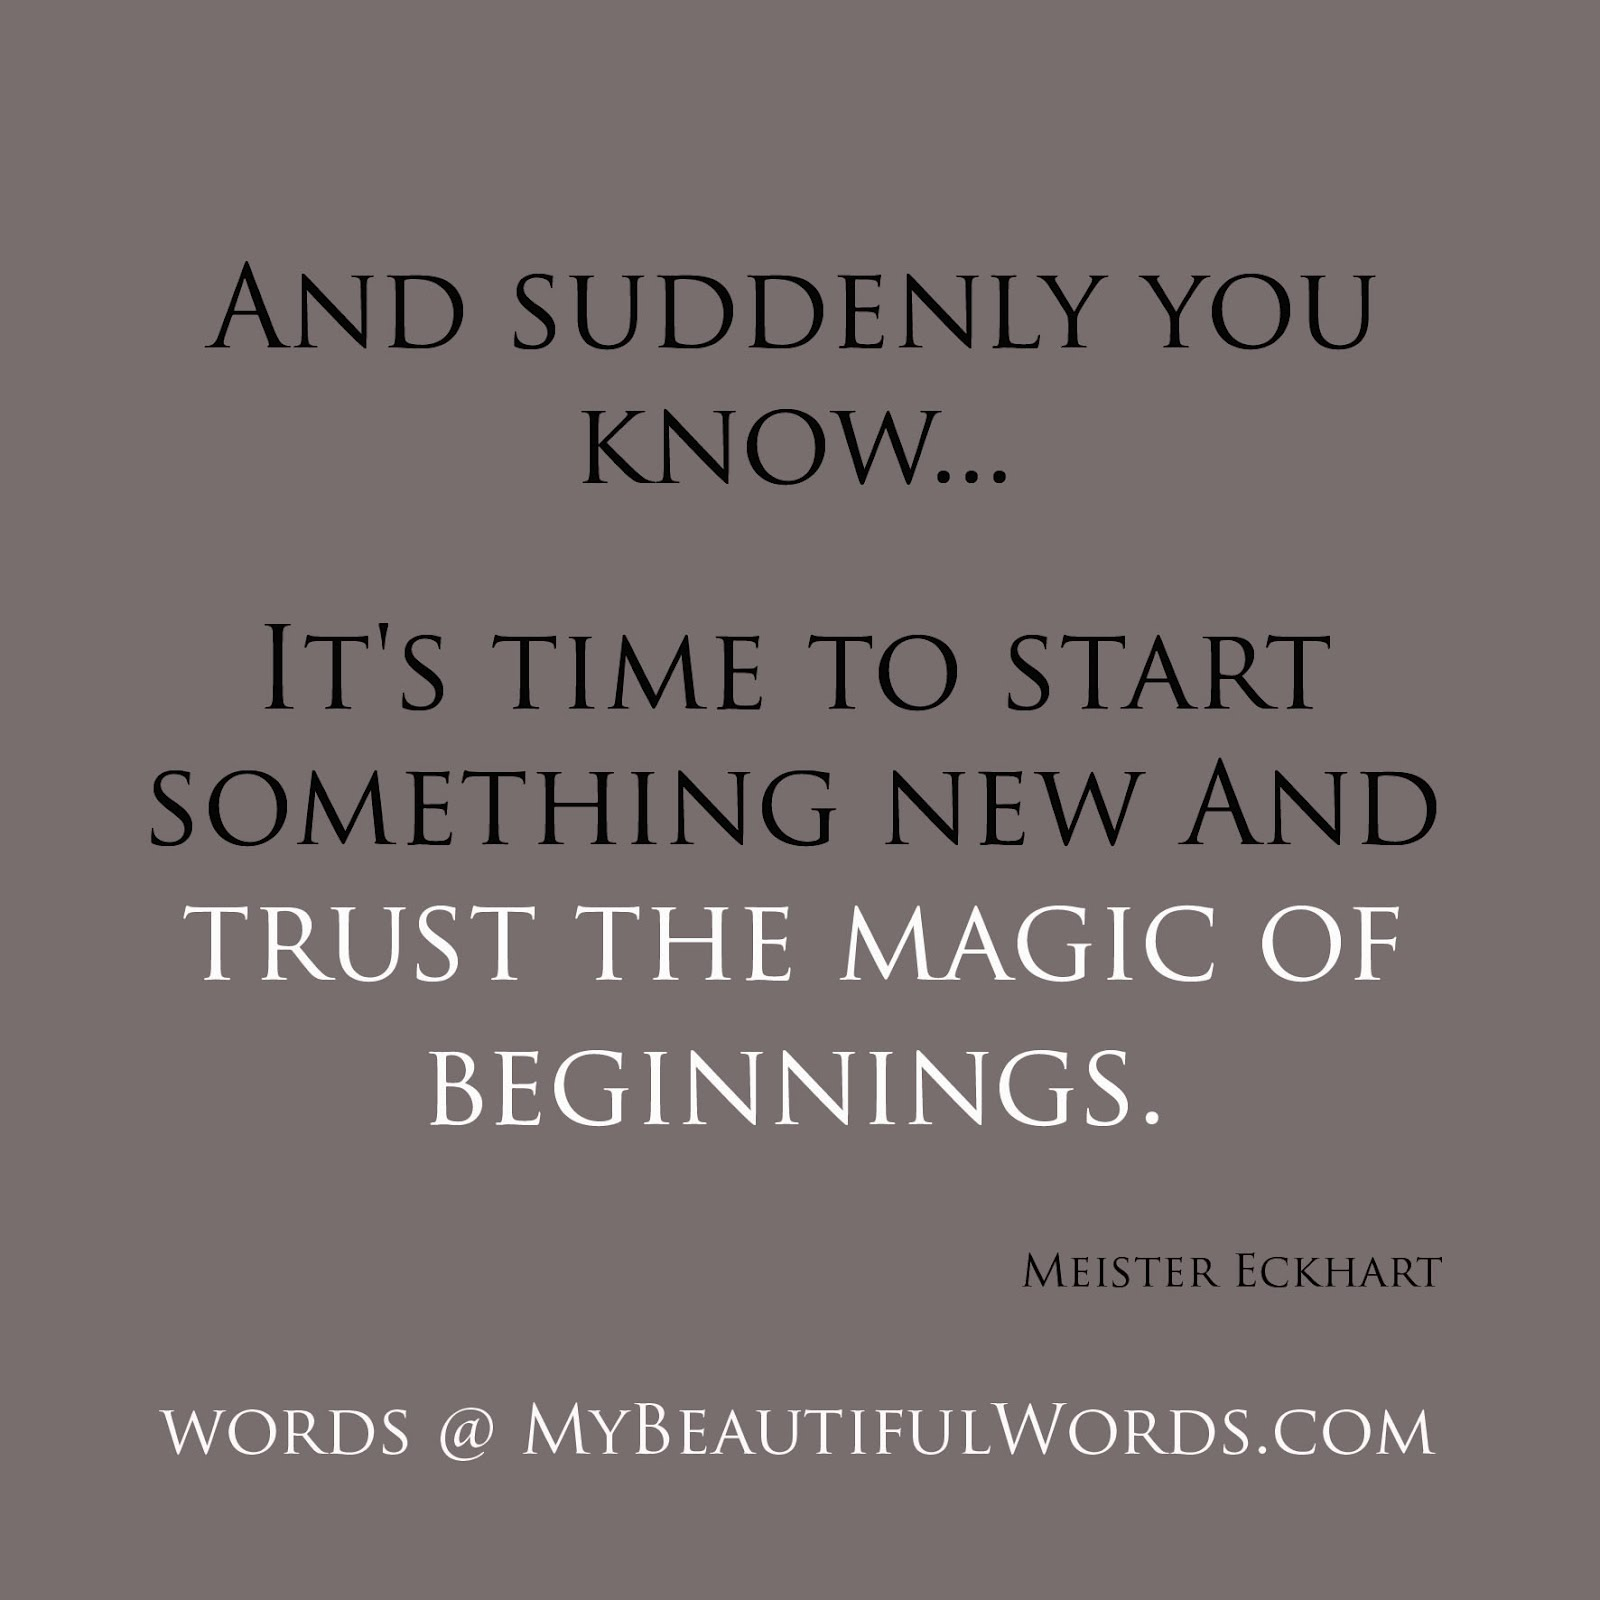 Beginning Relationship Quotes: My Beautiful Words.: Trust The Magic Of Beginnings